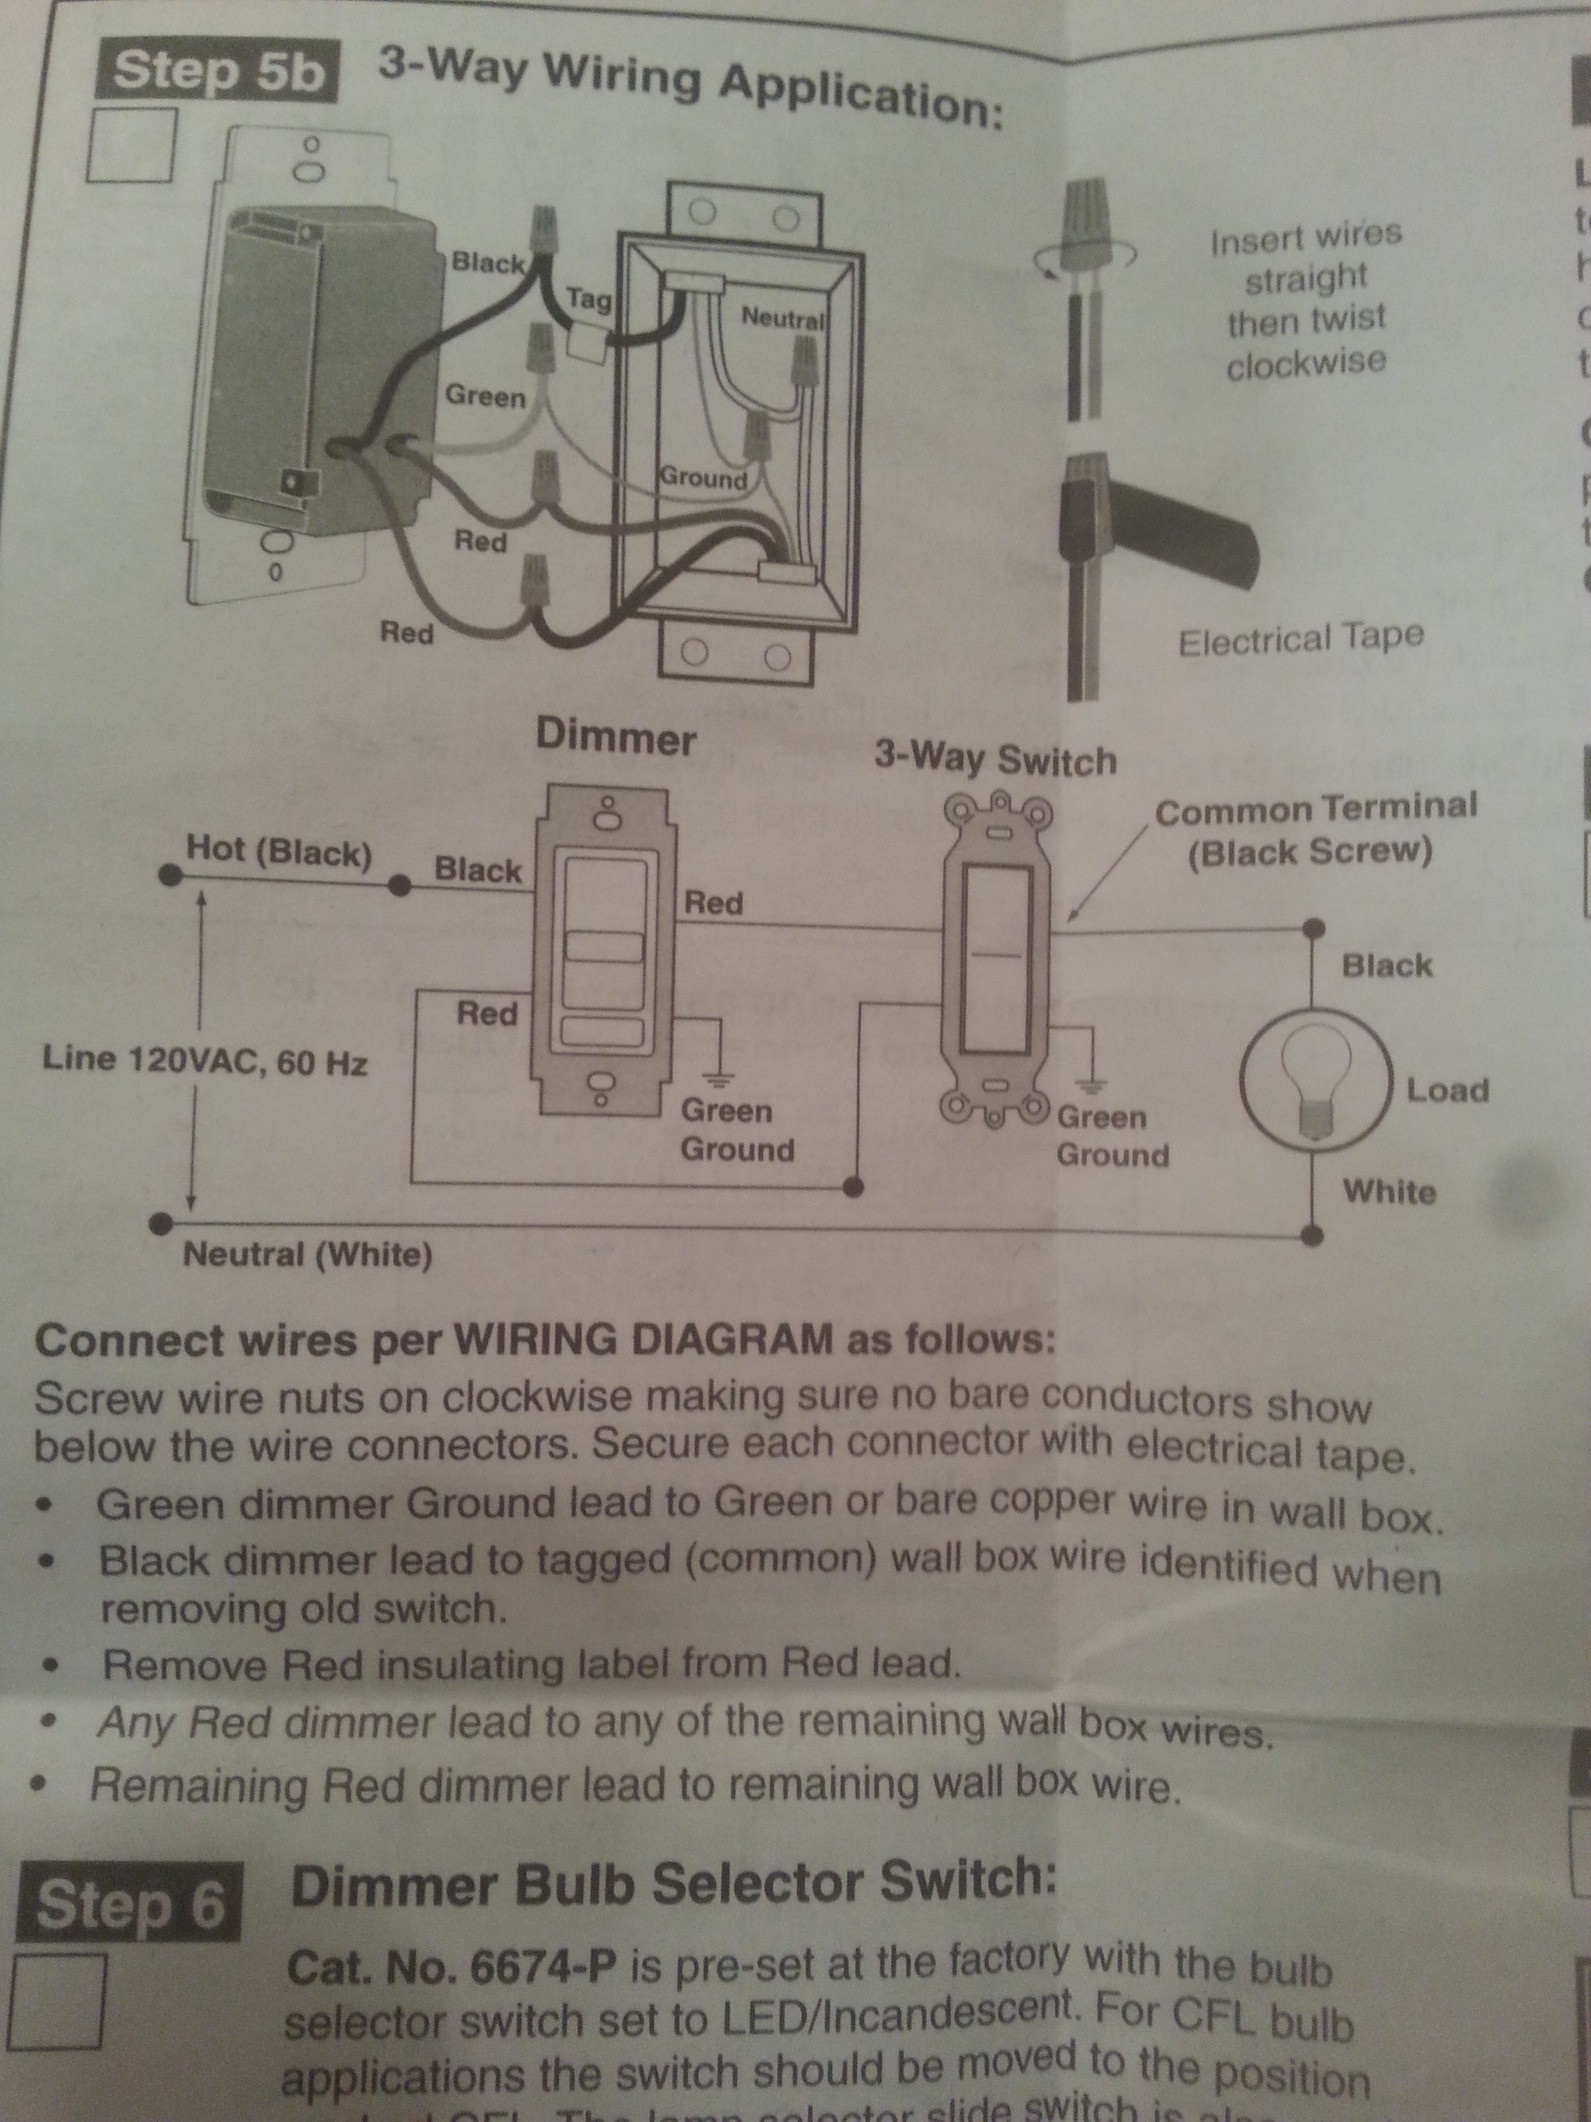 wiring diagram for 3 way switch ceiling fan how to make phasor do i wire a hard wired wall and remote my